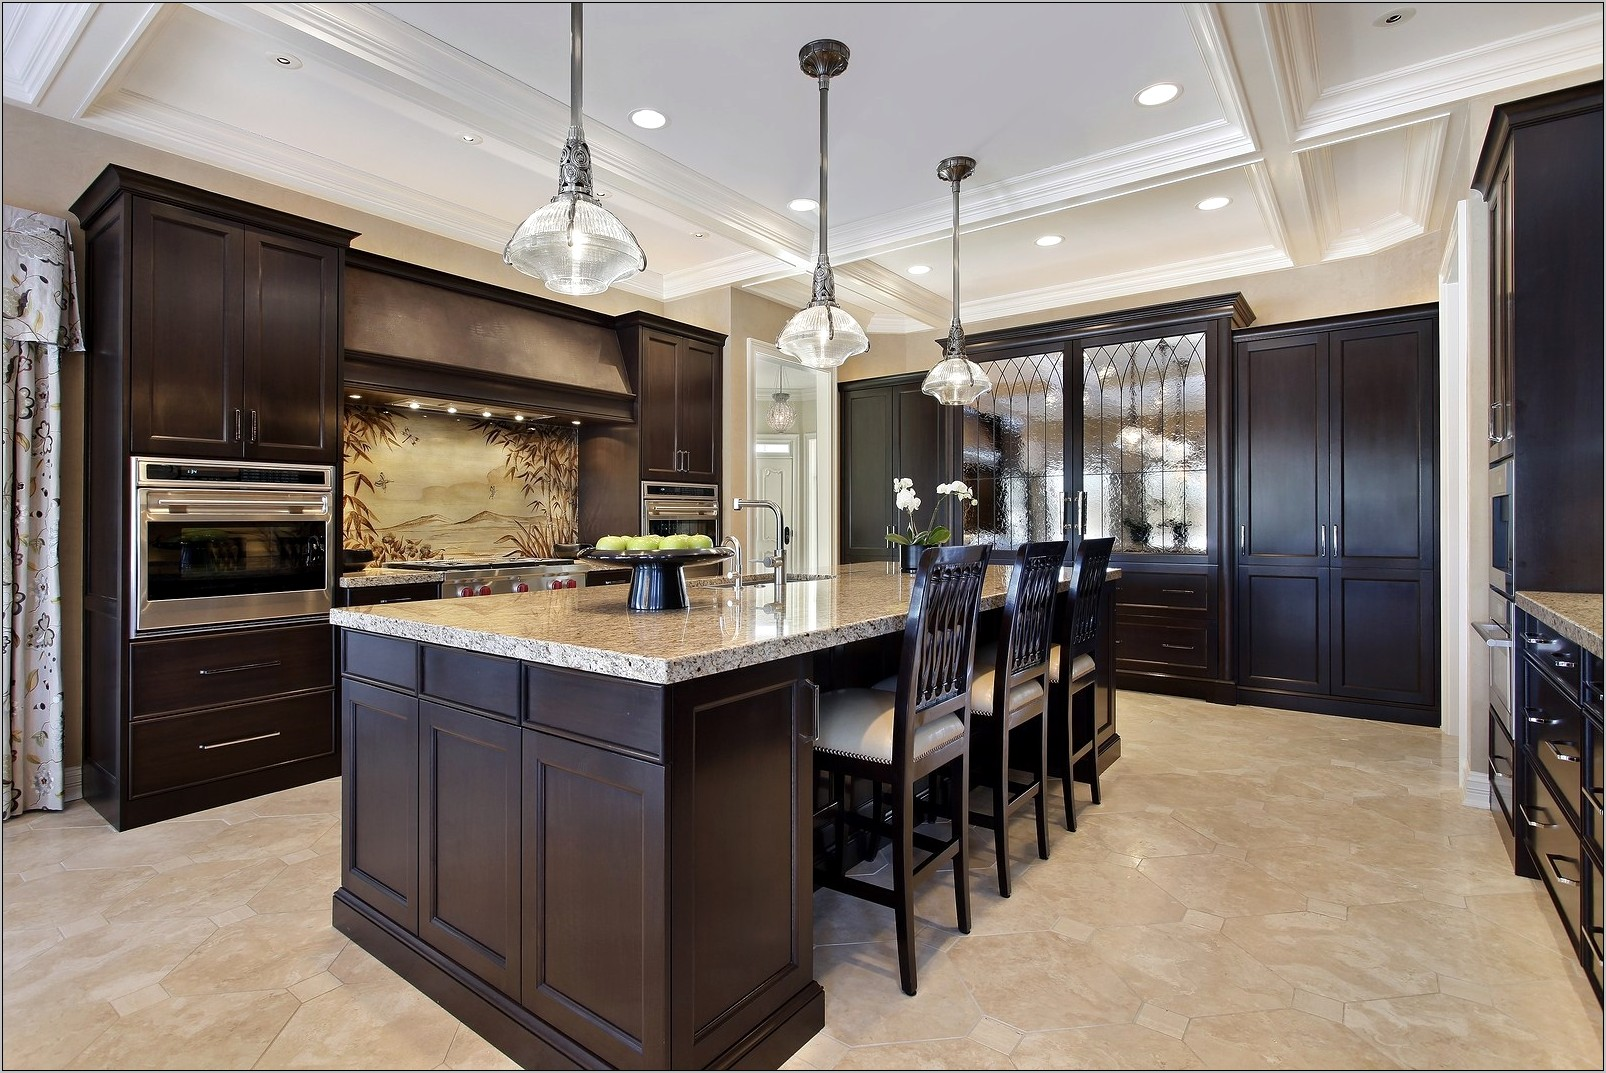 Decorating Kitchen With Light Wood Cabinets